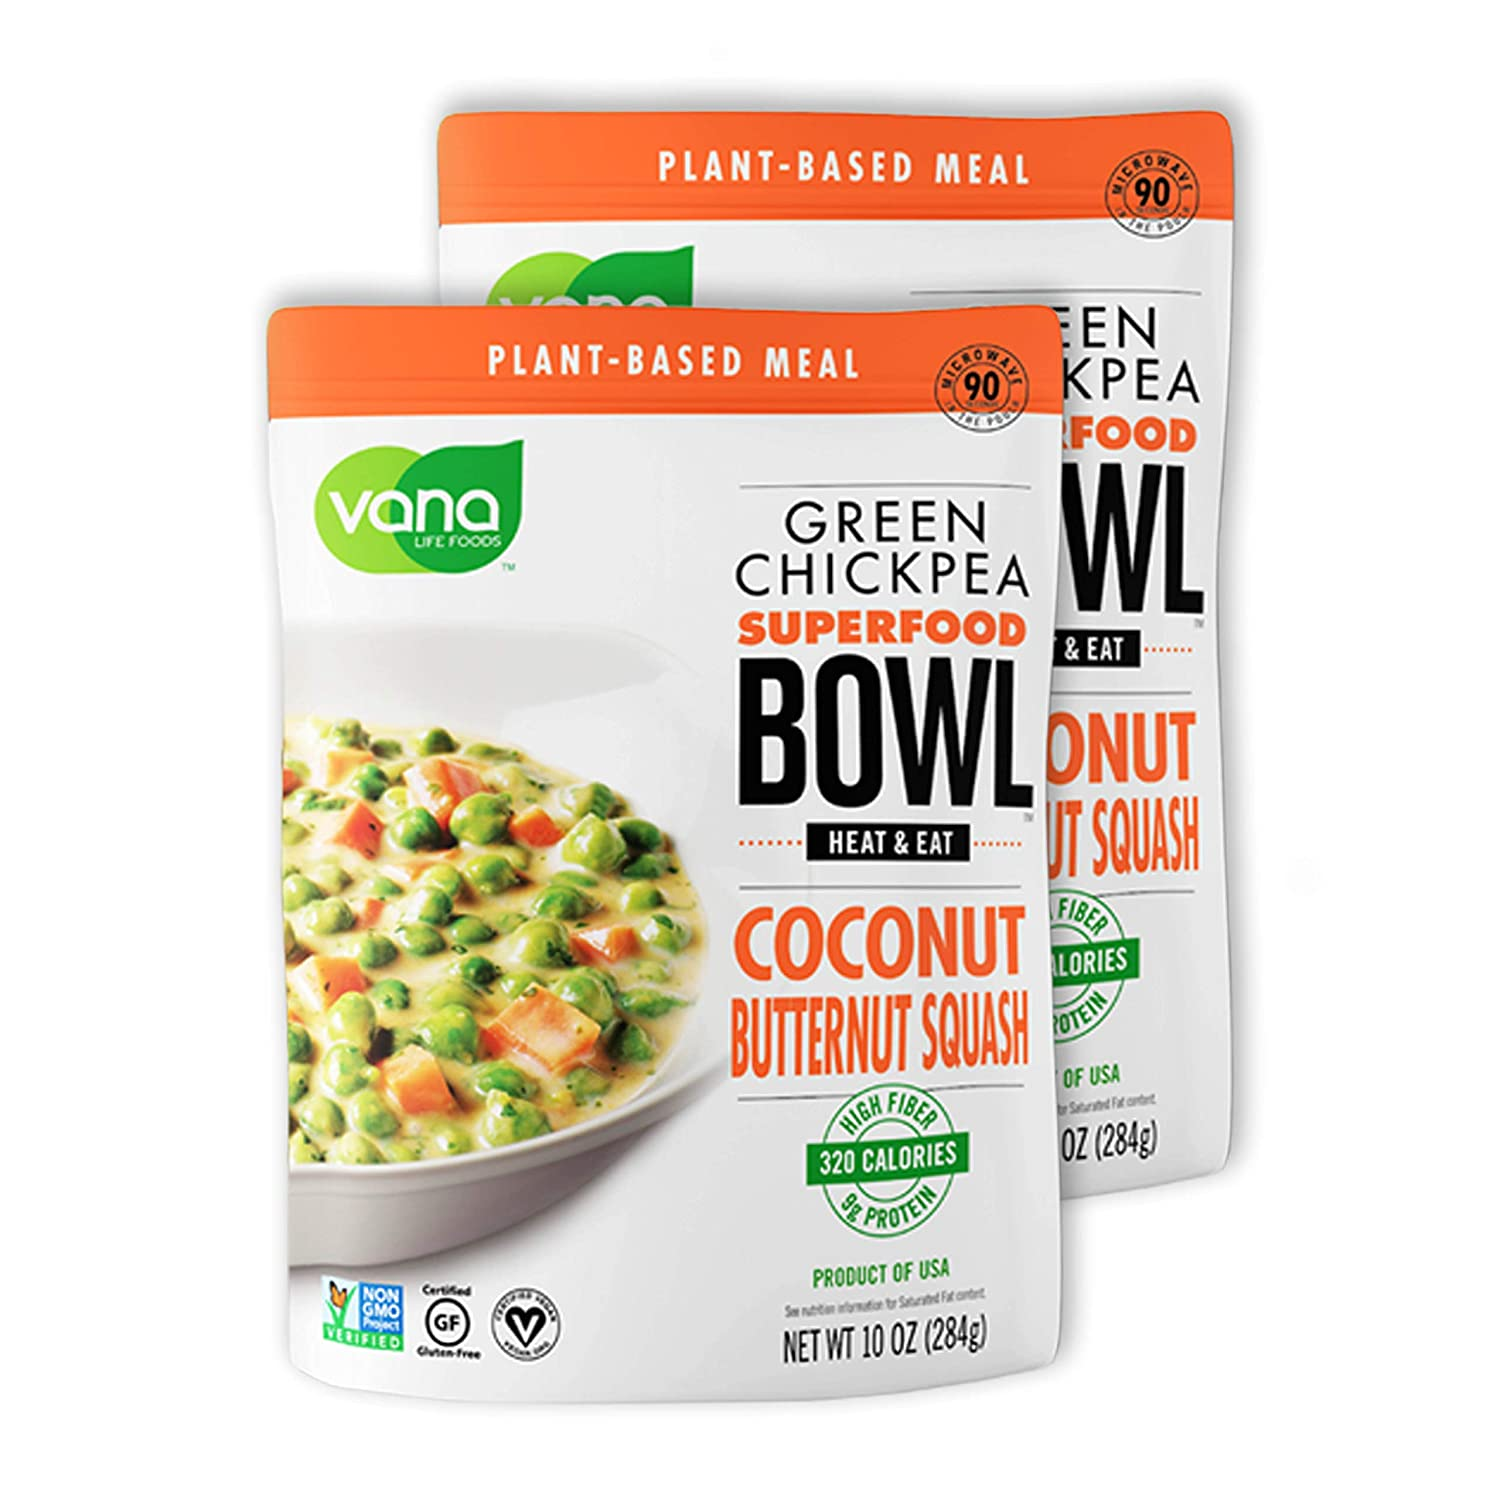 Green Chickpea Superfood Bowl by Vana Life Foods | Vegan Food Meal Kit | Curried Coconut Butternut Squash | Plant Based Meals Ready to Eat | Organic, Non-GMO, Gluten-Free | 2 Pack - 10 Oz Pouches